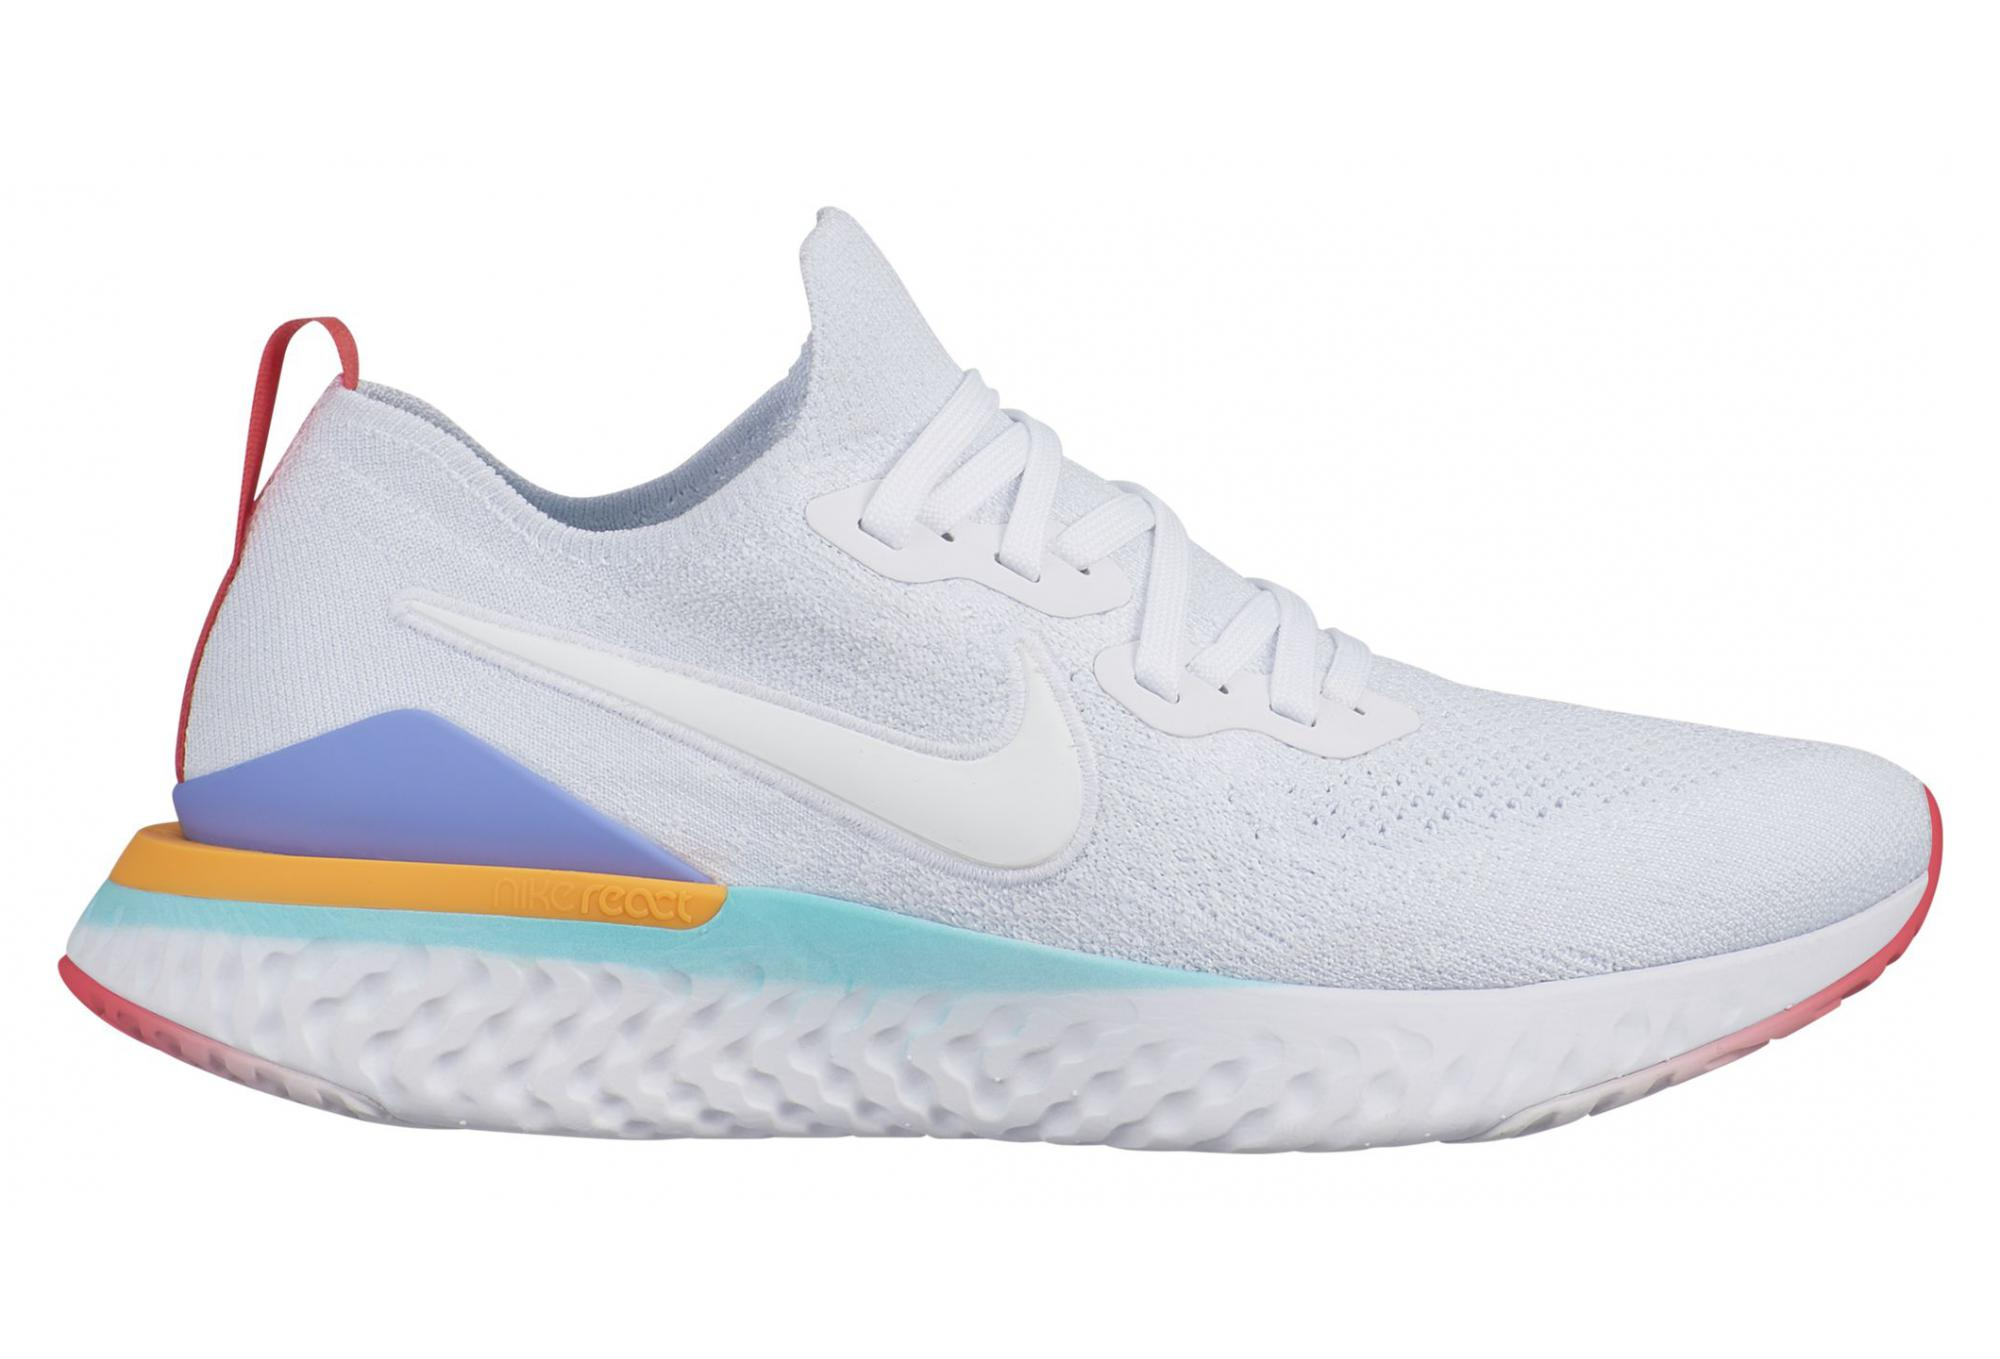 Señor Caracterizar Invertir  Nike Epic React Flyknit 2 White Multi-color Women | Alltricks.com